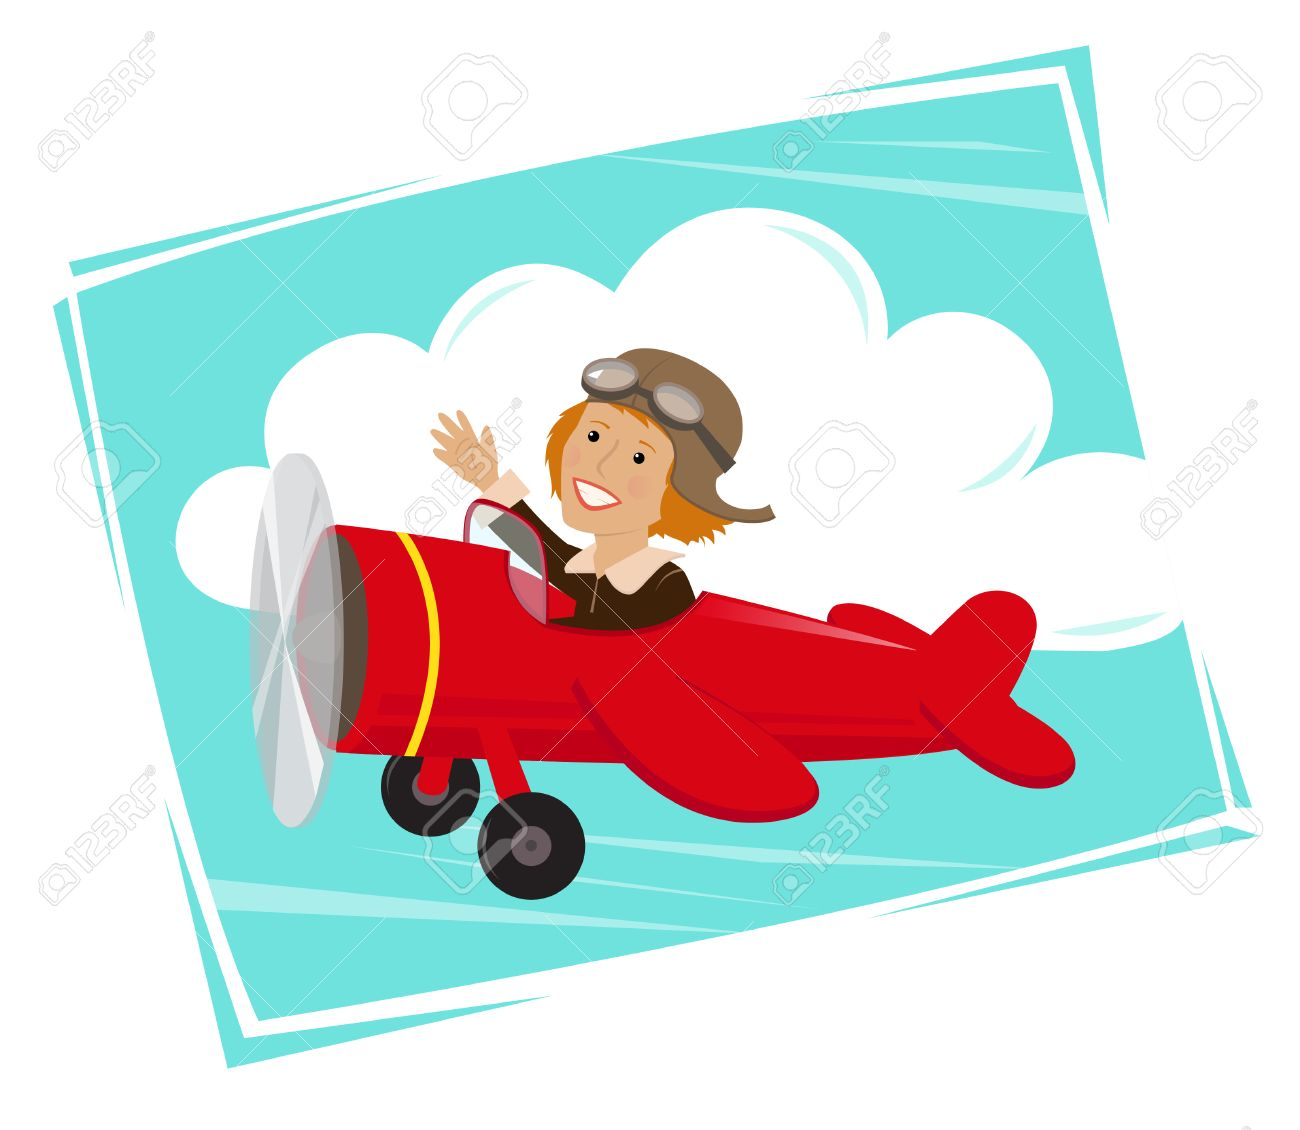 Amelia earhart clipart 2 » Clipart Station.